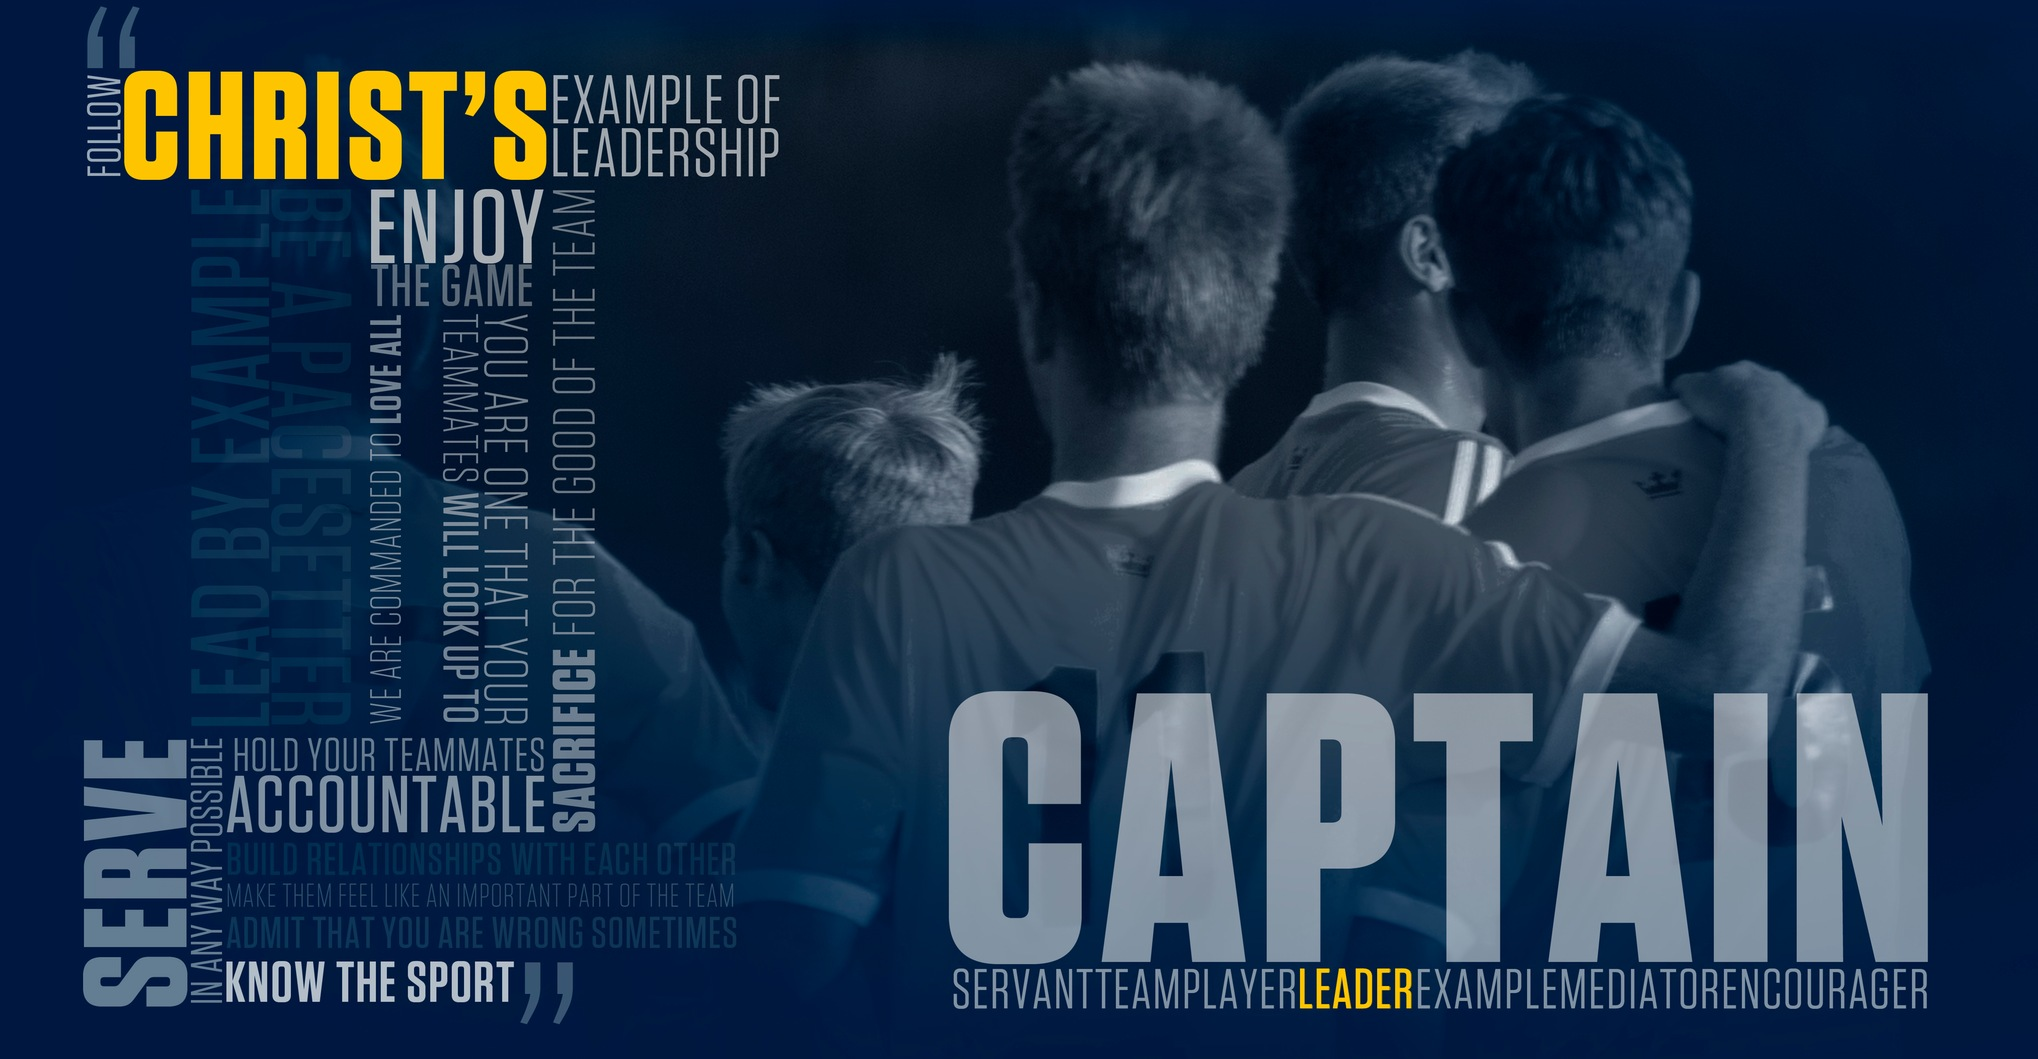 Lessons on Leadership from the Captains